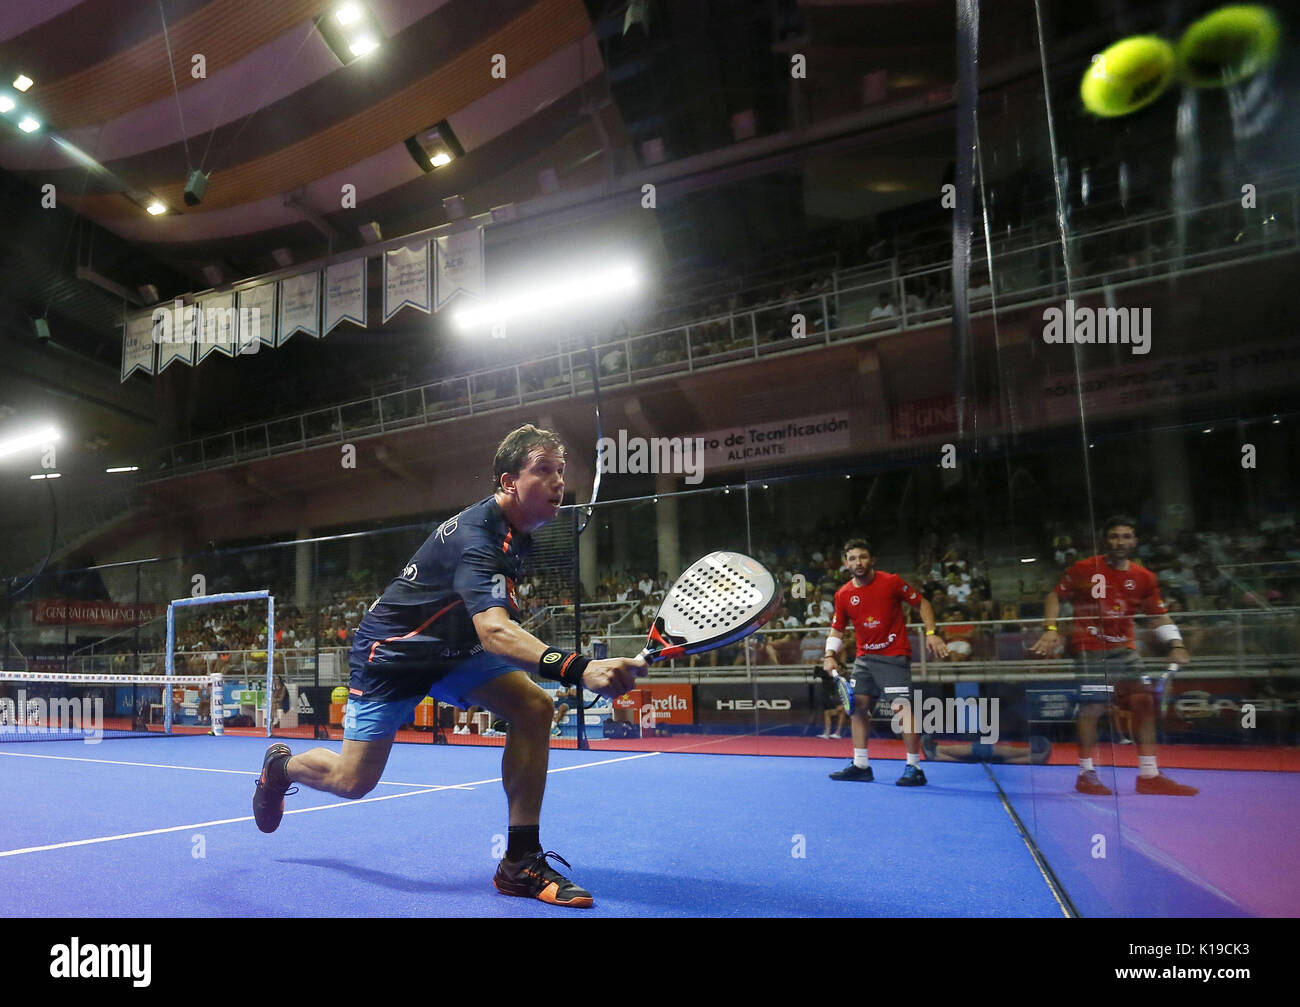 Padel players Francisco Navarro (L) and Daniel Gutierrez 'Sanyo' in action during the Alicante Open 2017 men's semifinal, the sixth event of the professional circuit World Padel Tour, in Alicante, Spain, 26 August 2017. EFE/Manuel Lorenzo - Stock Image